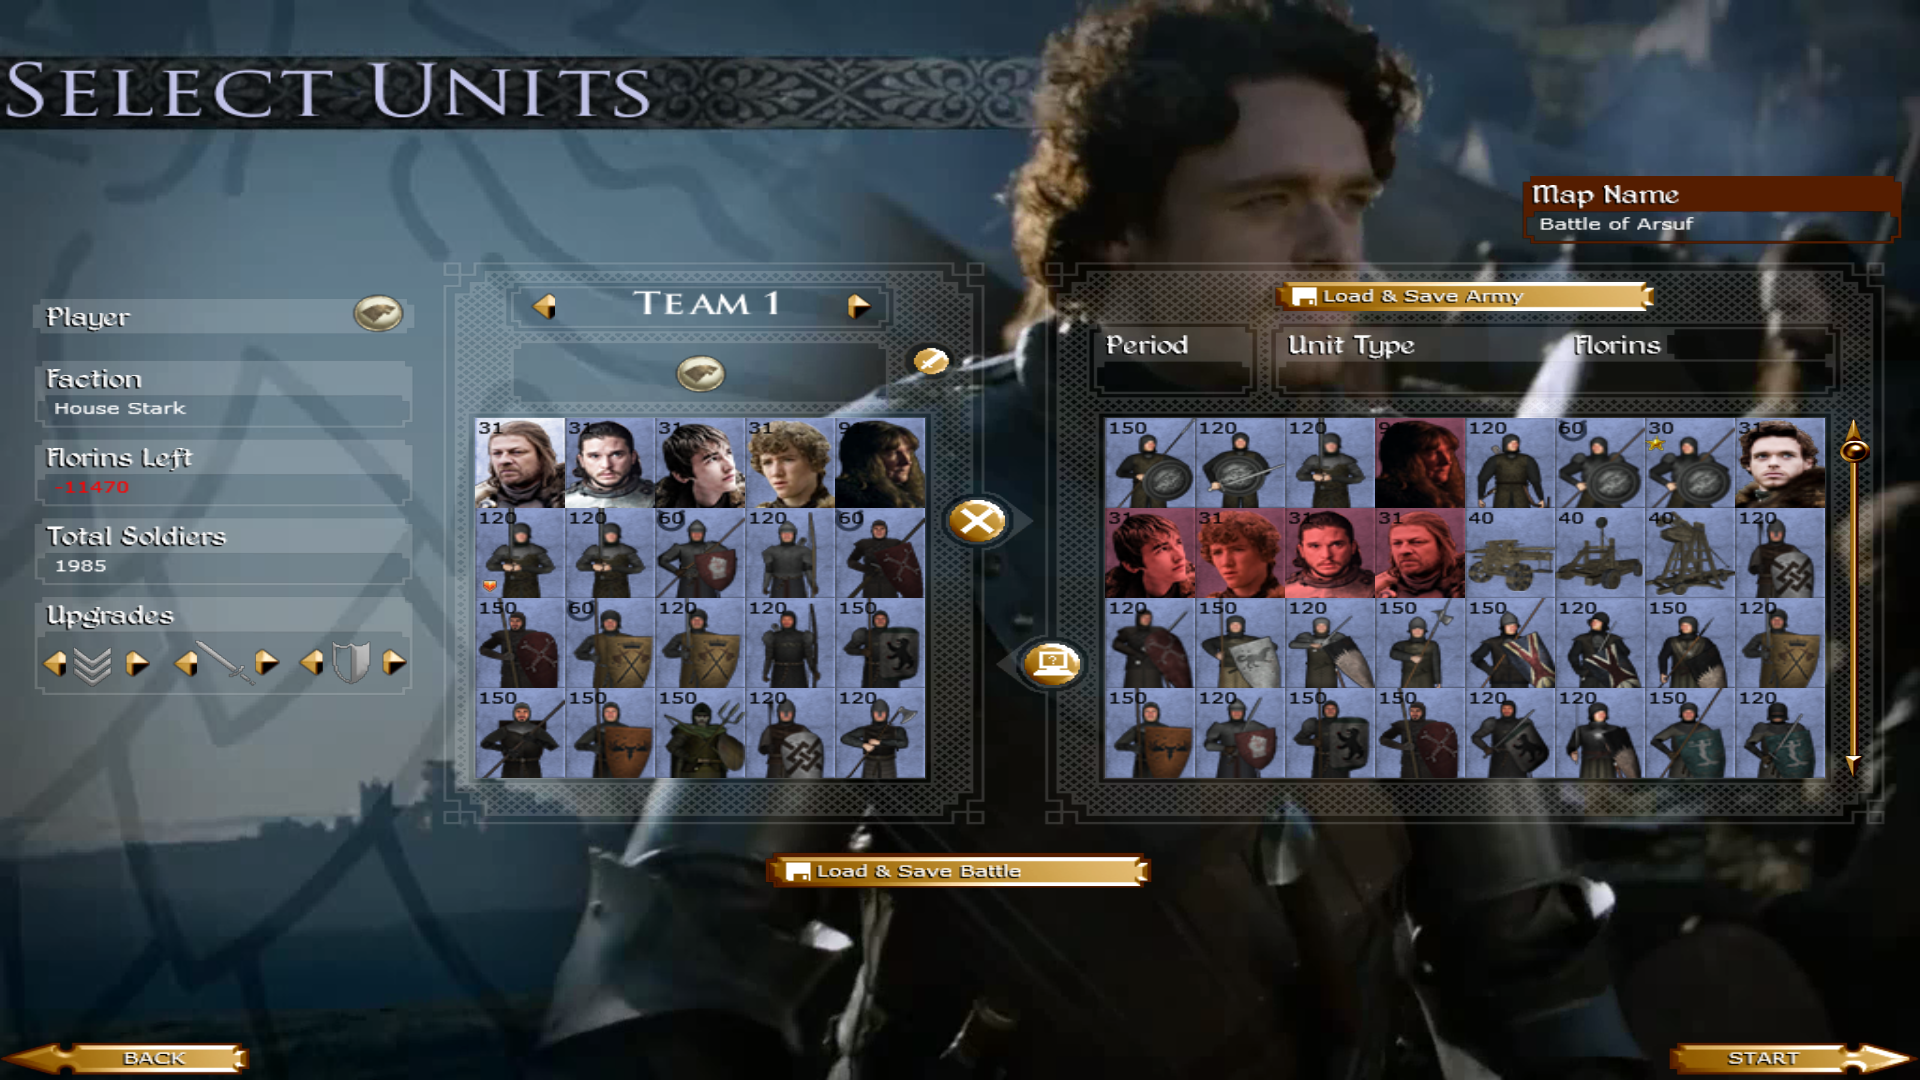 New House Stark units and minor house units!